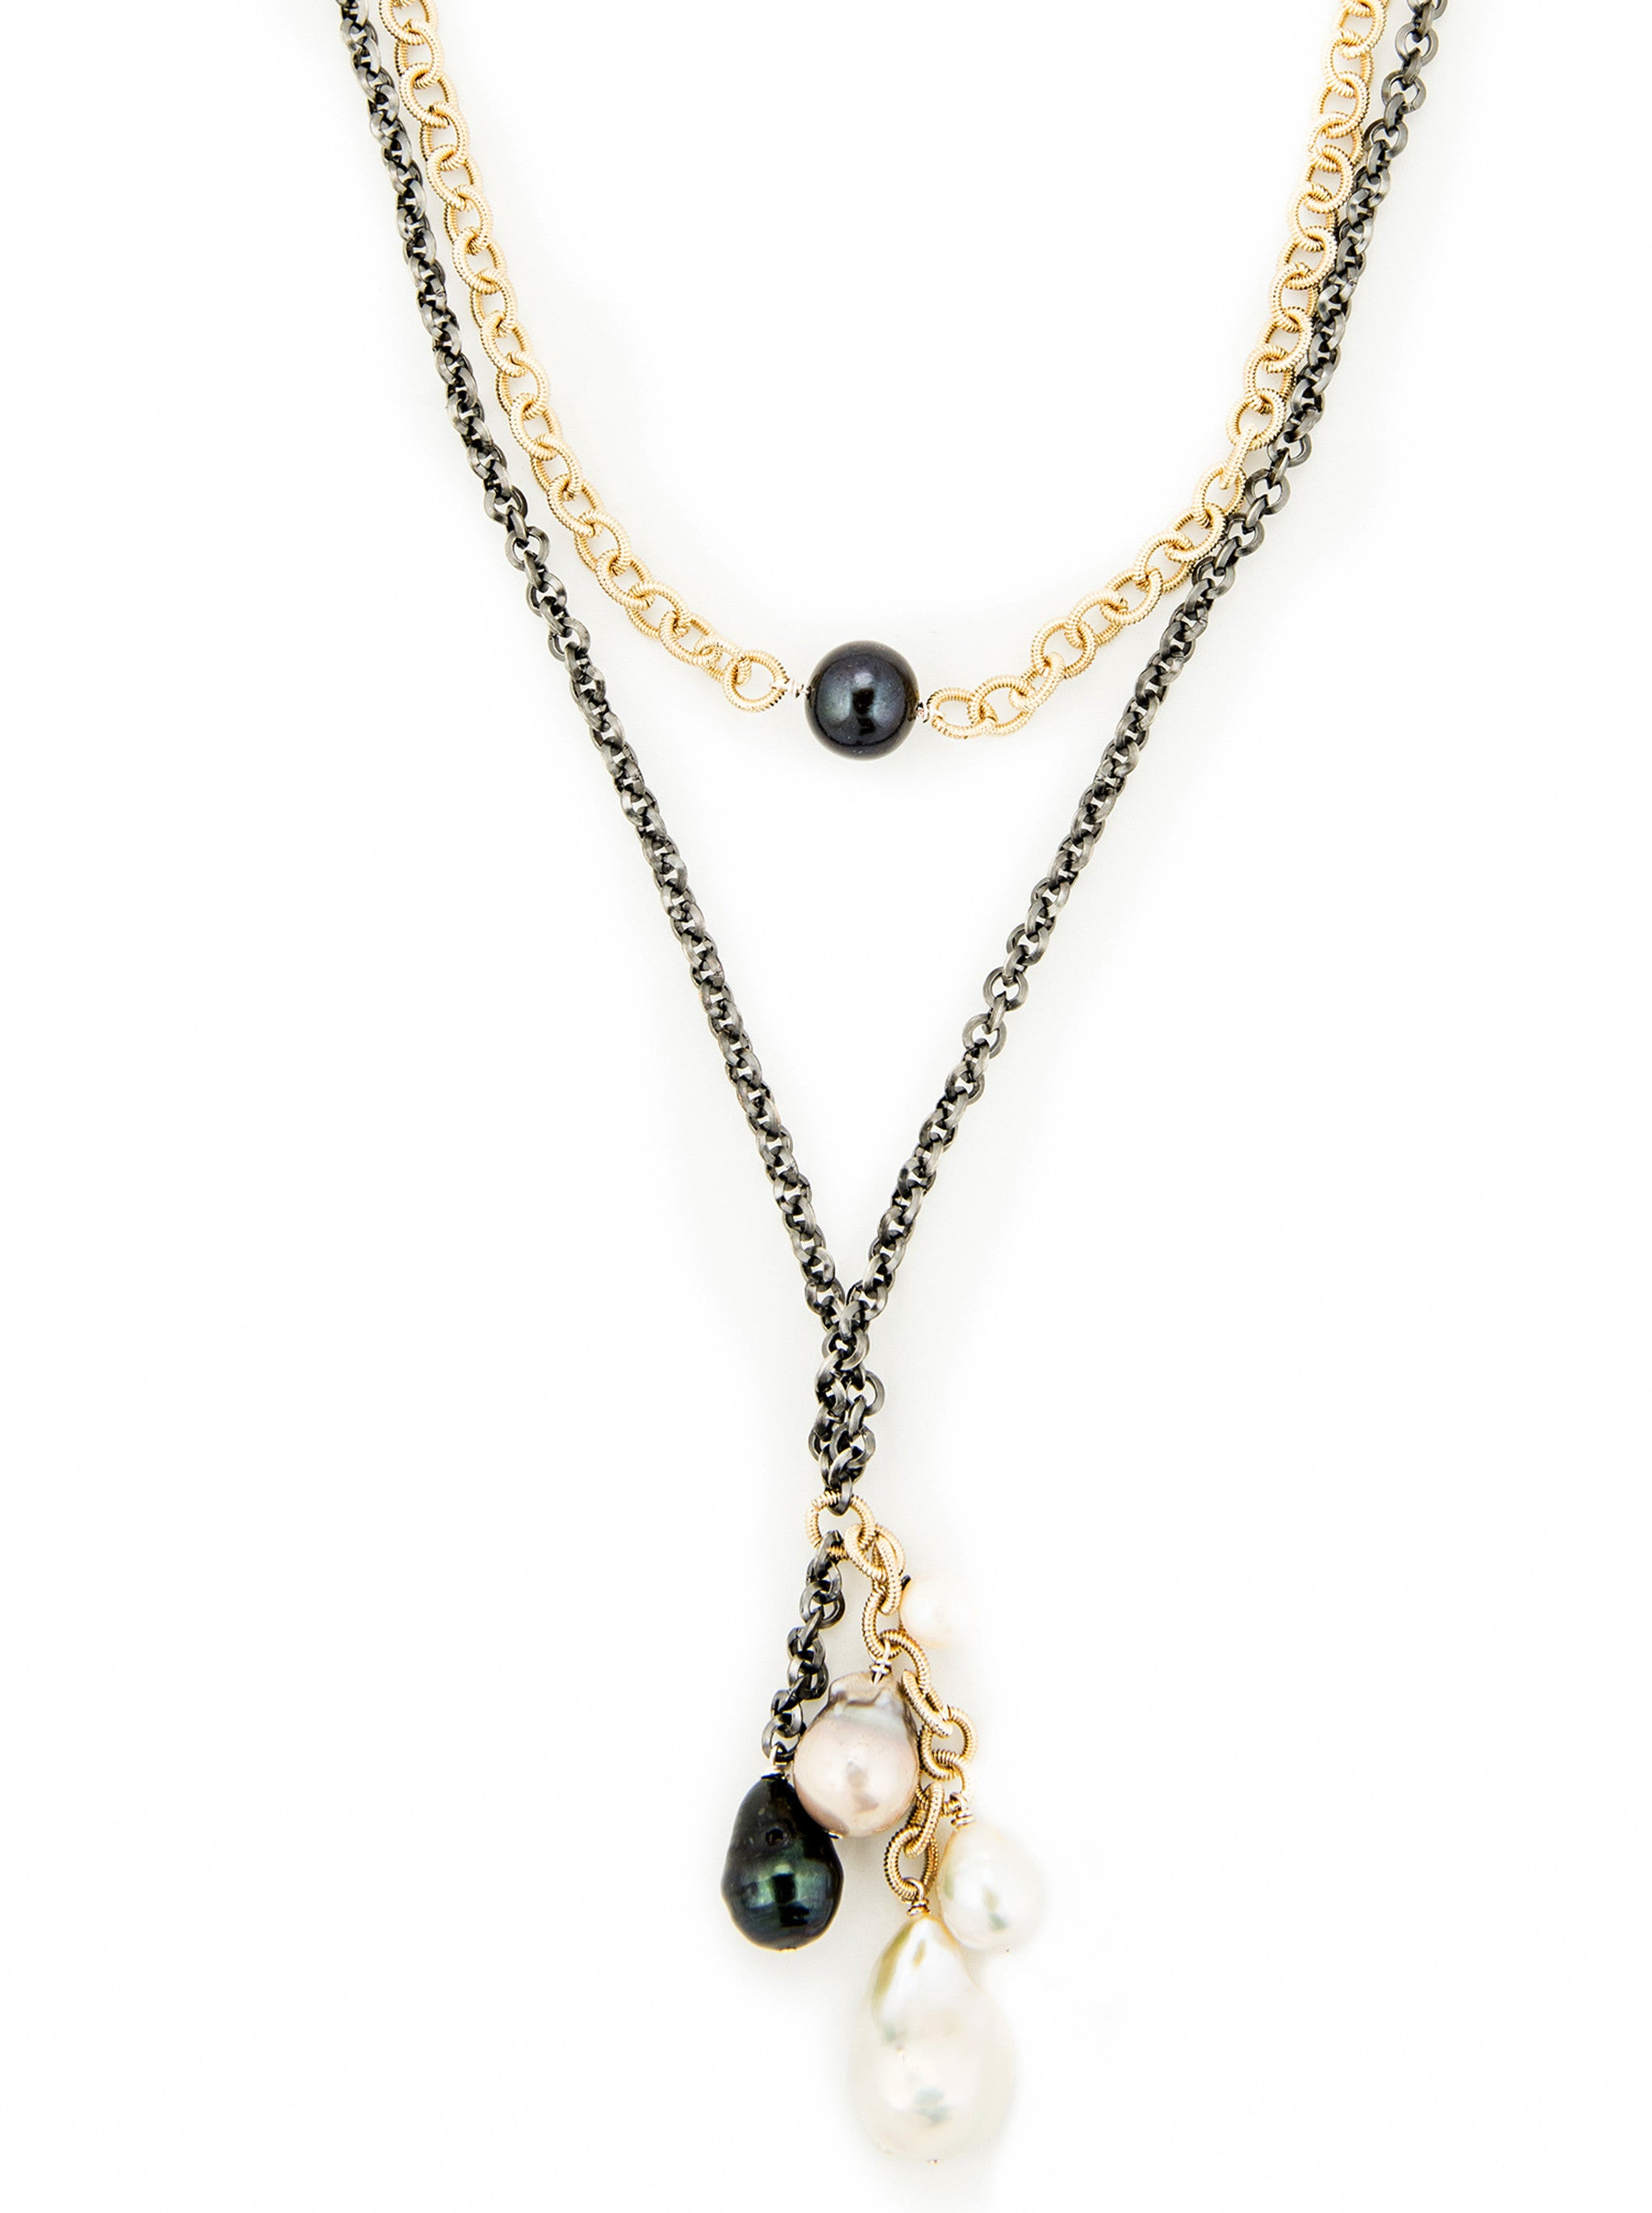 Mixed Metal with Black and White Fresh Water Pearls